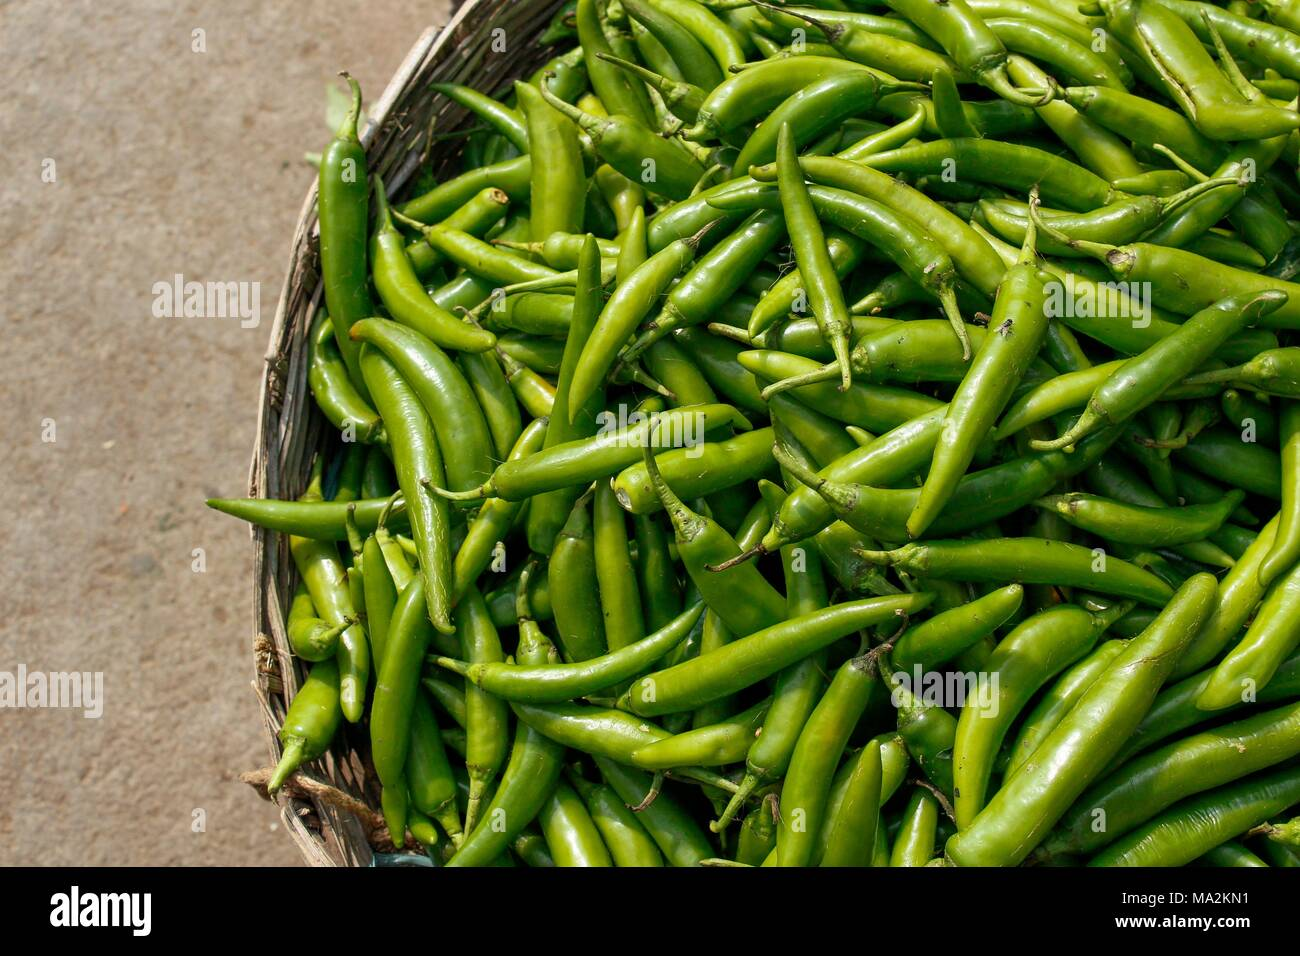 A basket of fresh green chillies on Indian market - Stock Image